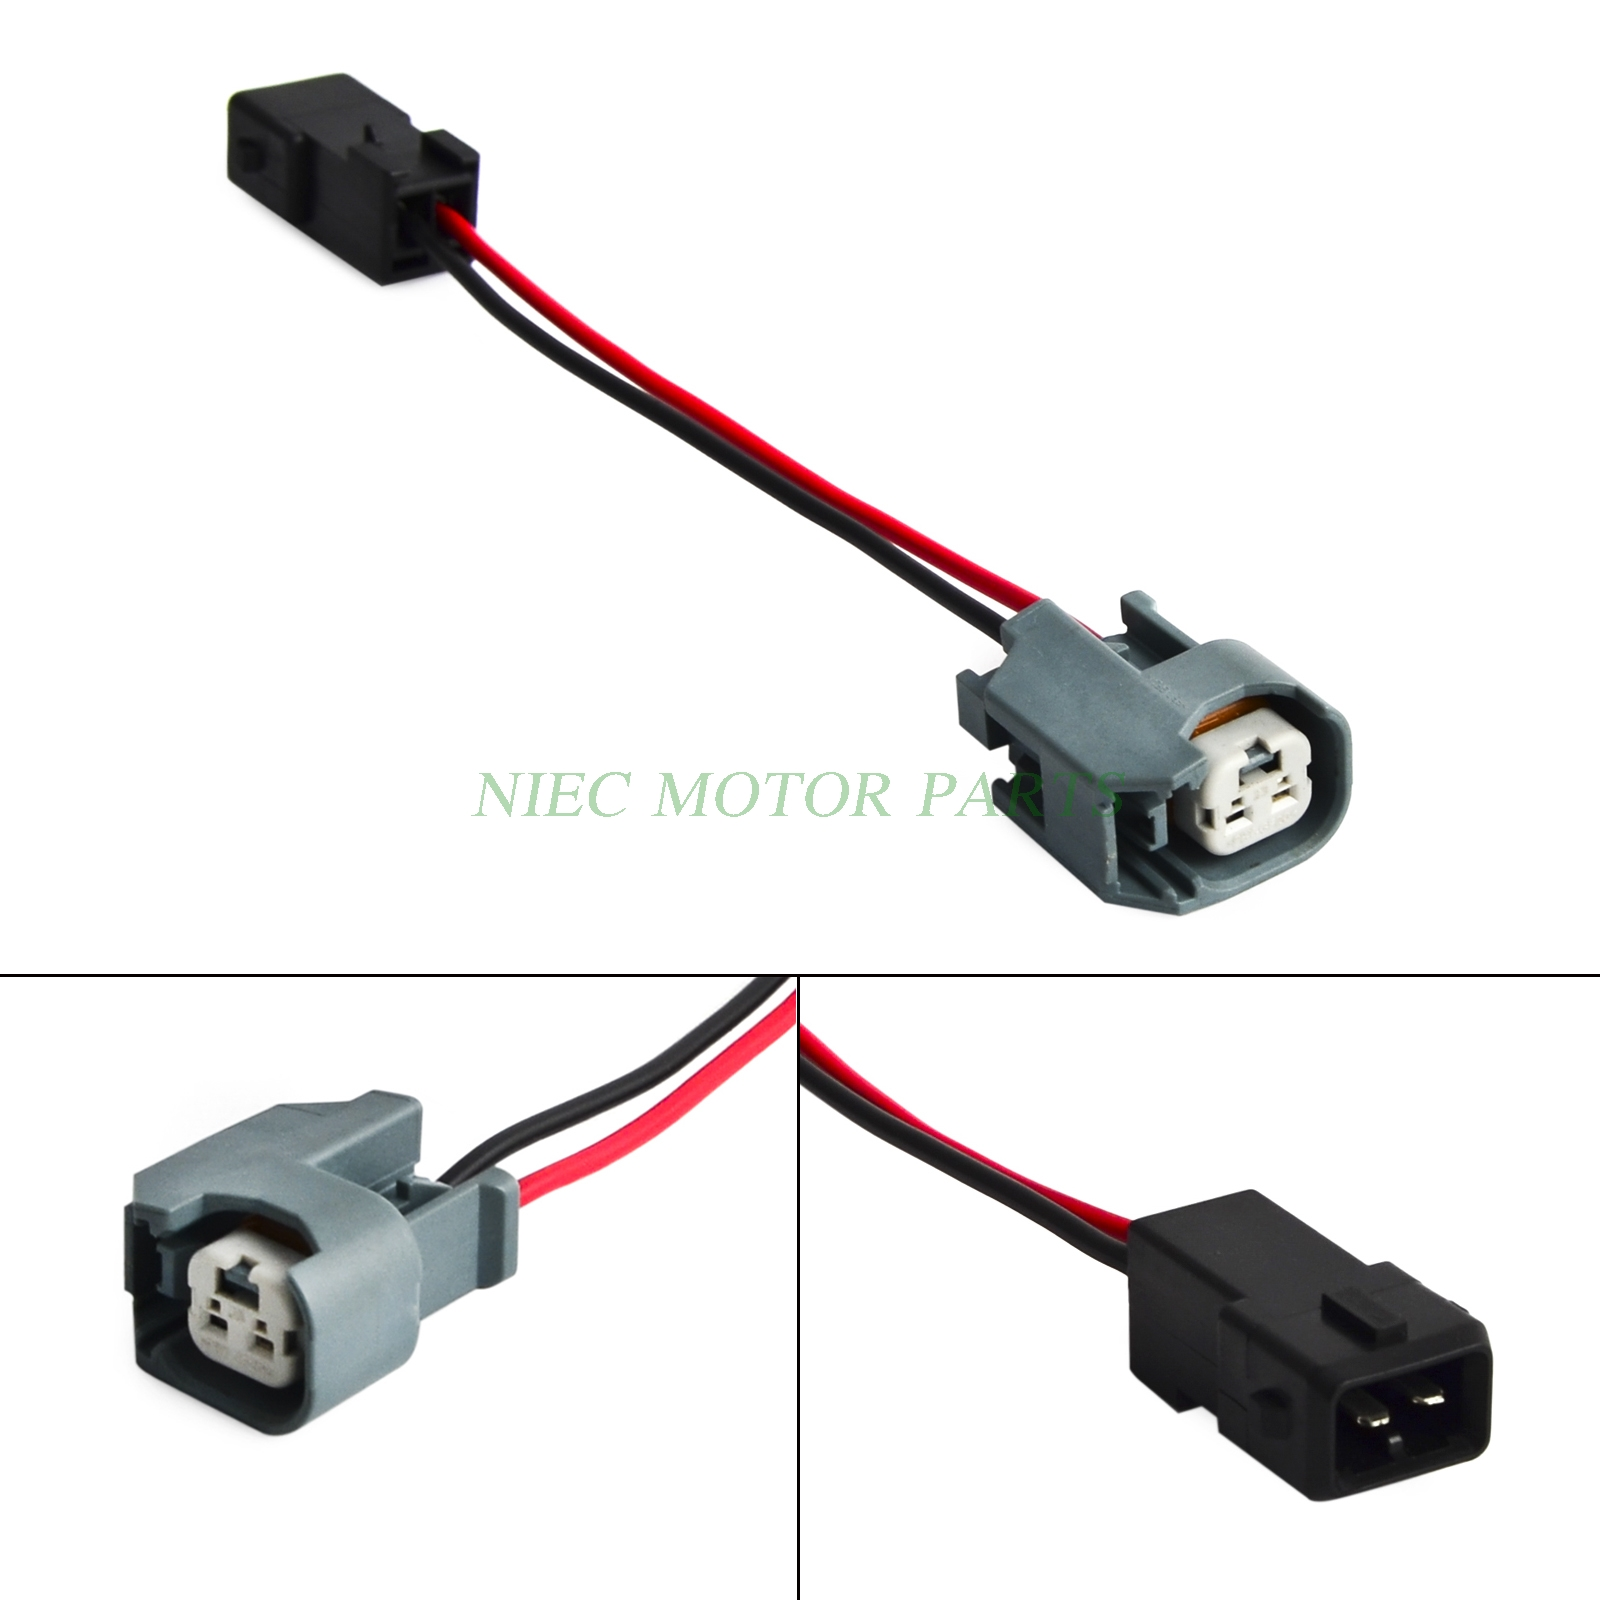 Engine Fuel injector wire Harness Connectors Adapter For 8 LS1 LS6